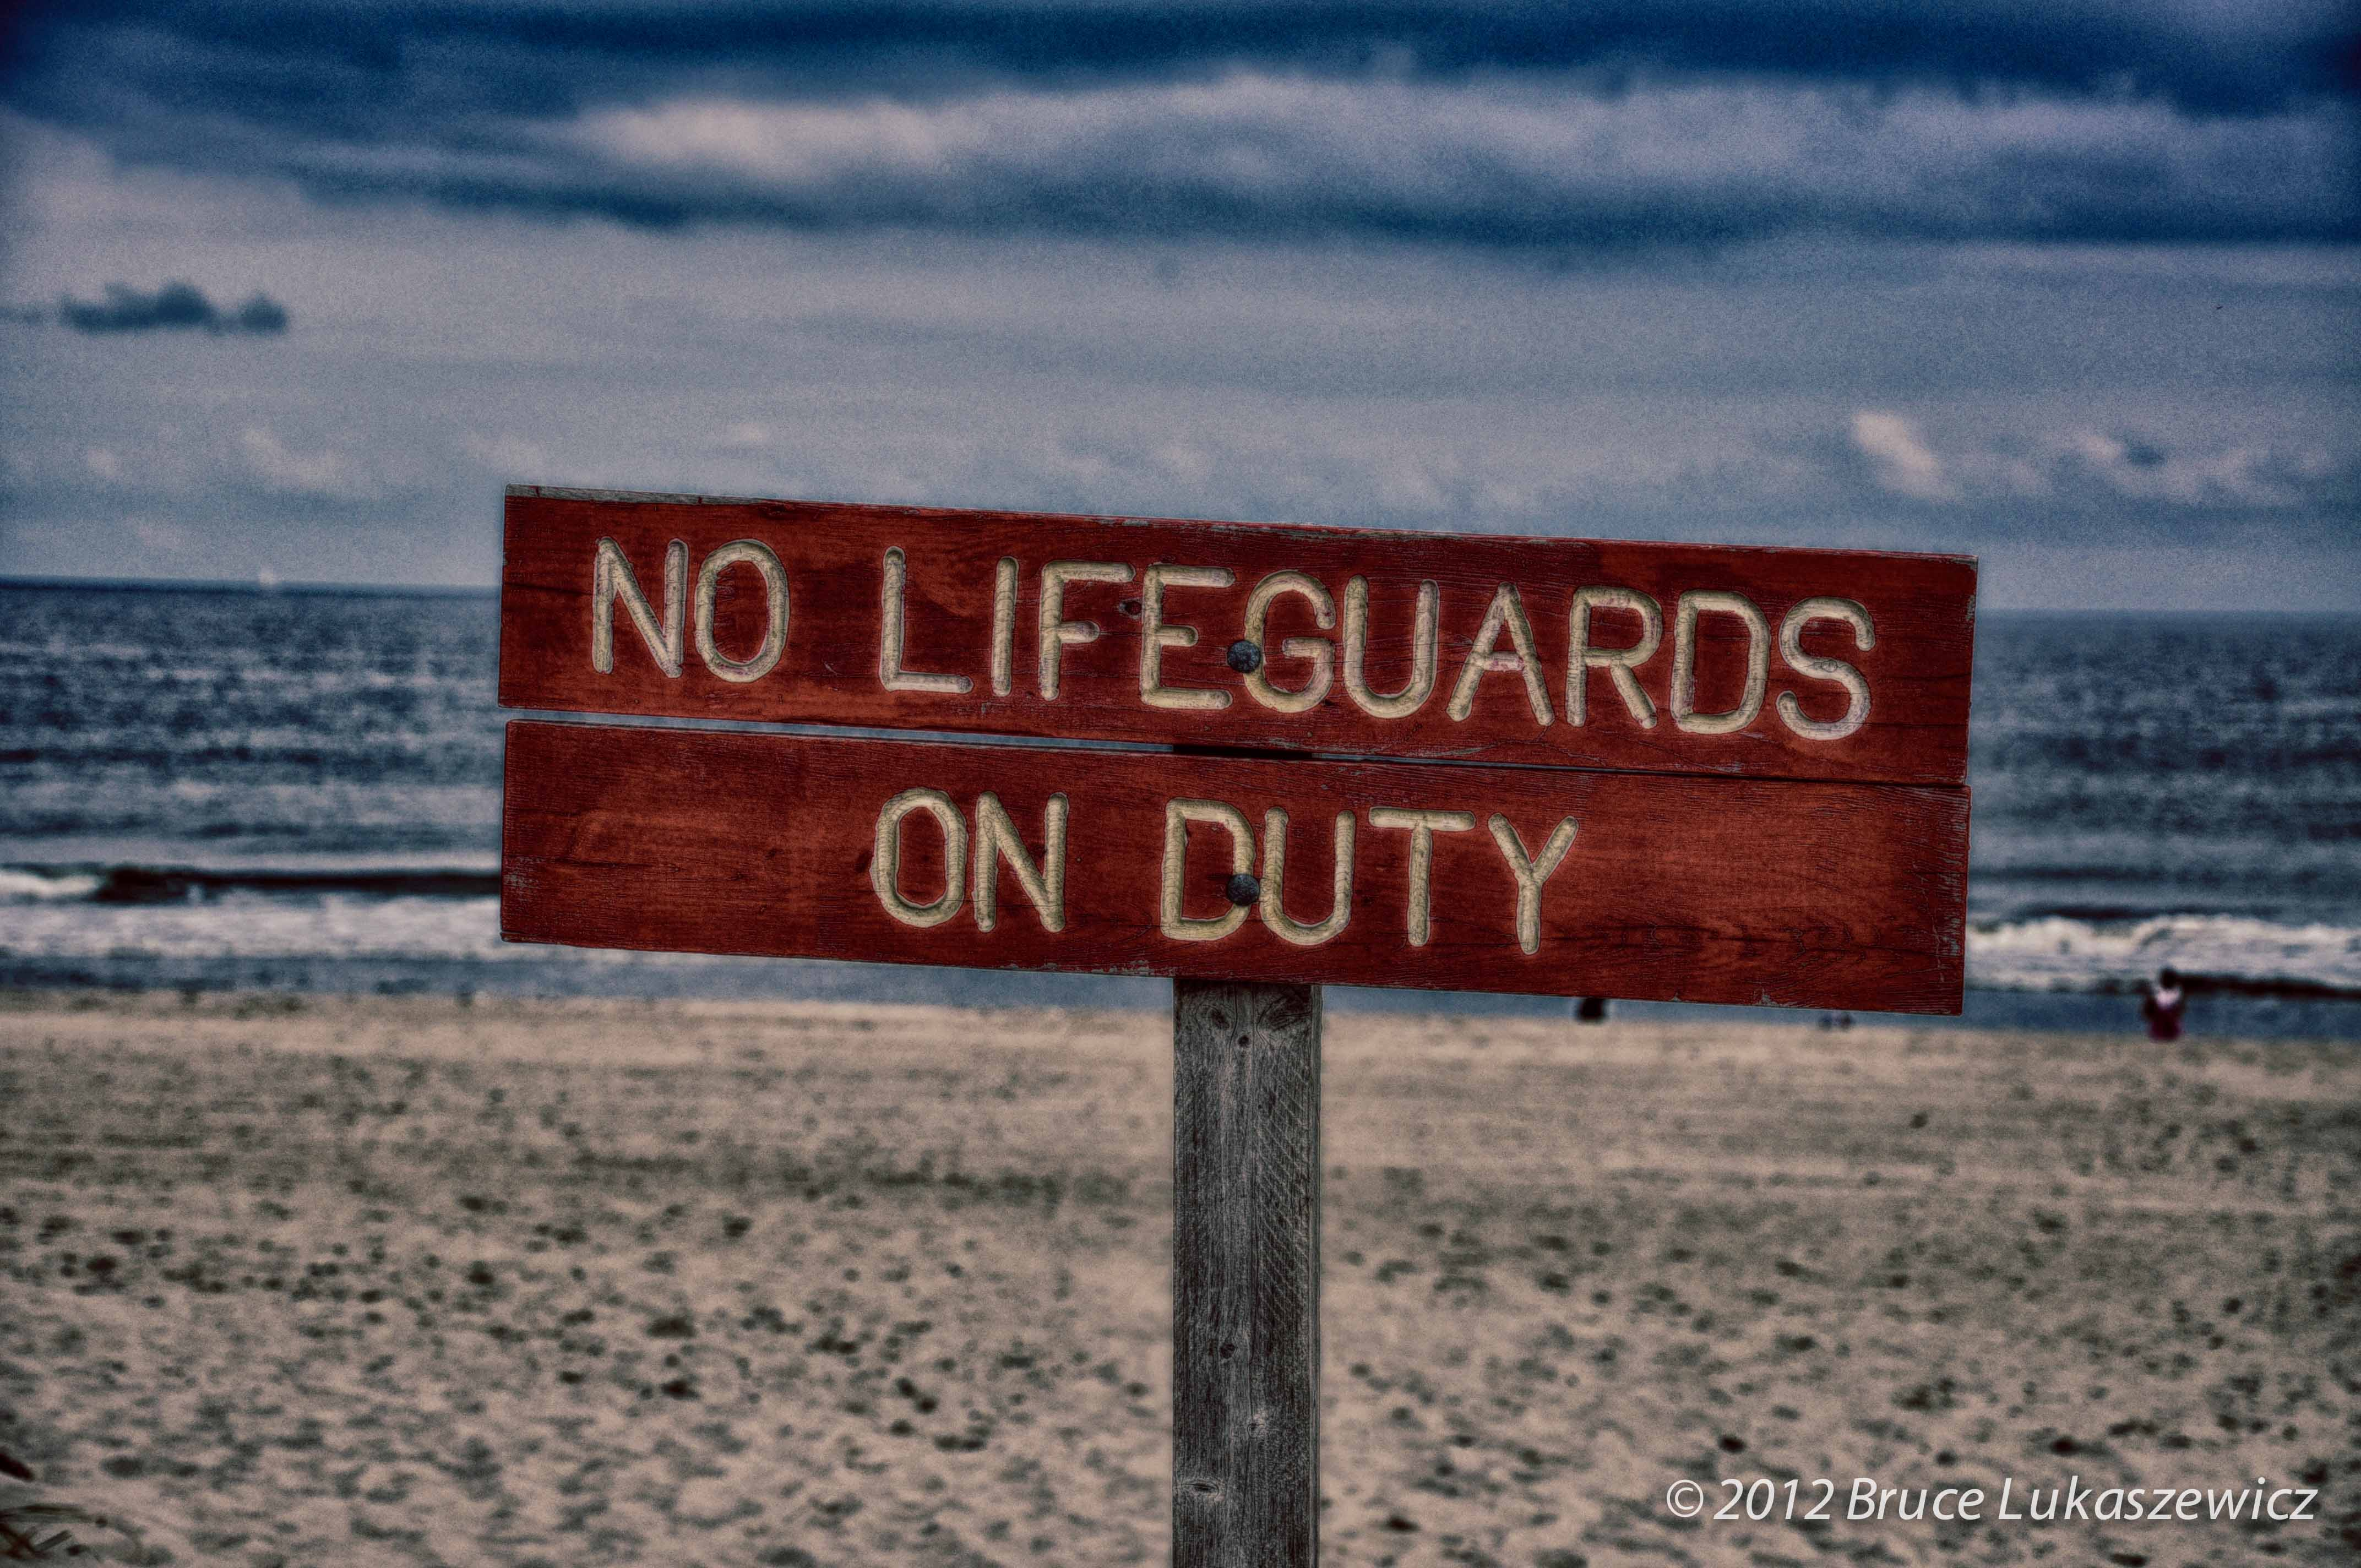 Just what the sign says... After Labor Day, before Memorial Day at most beaches in New Jersey.